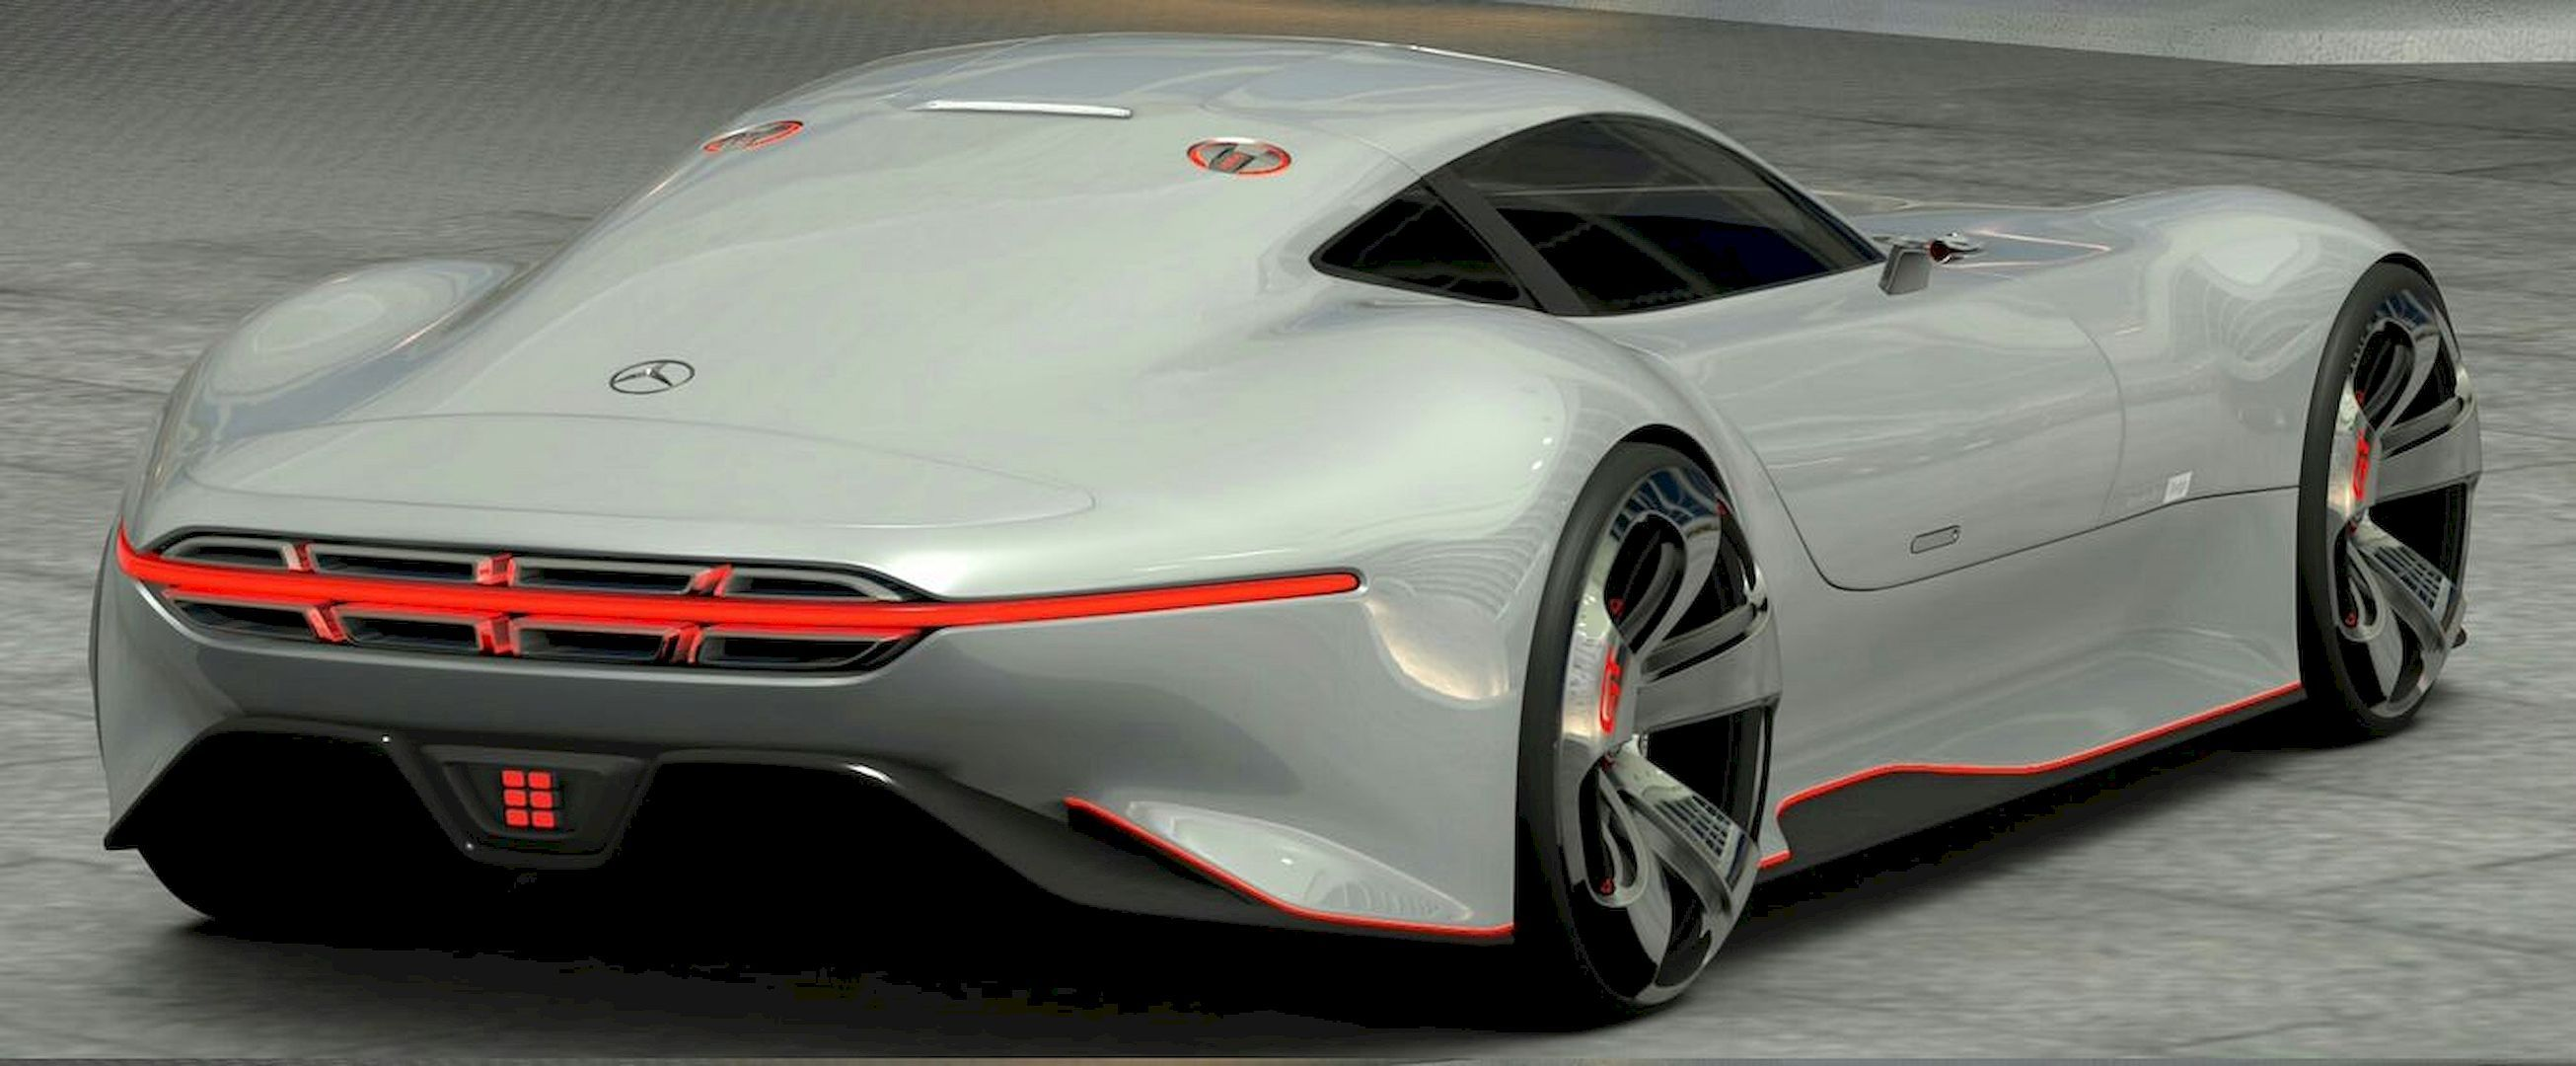 Awesome Super Cool Futuristic Car Designs (96 Photos) Https://www.designlisticle